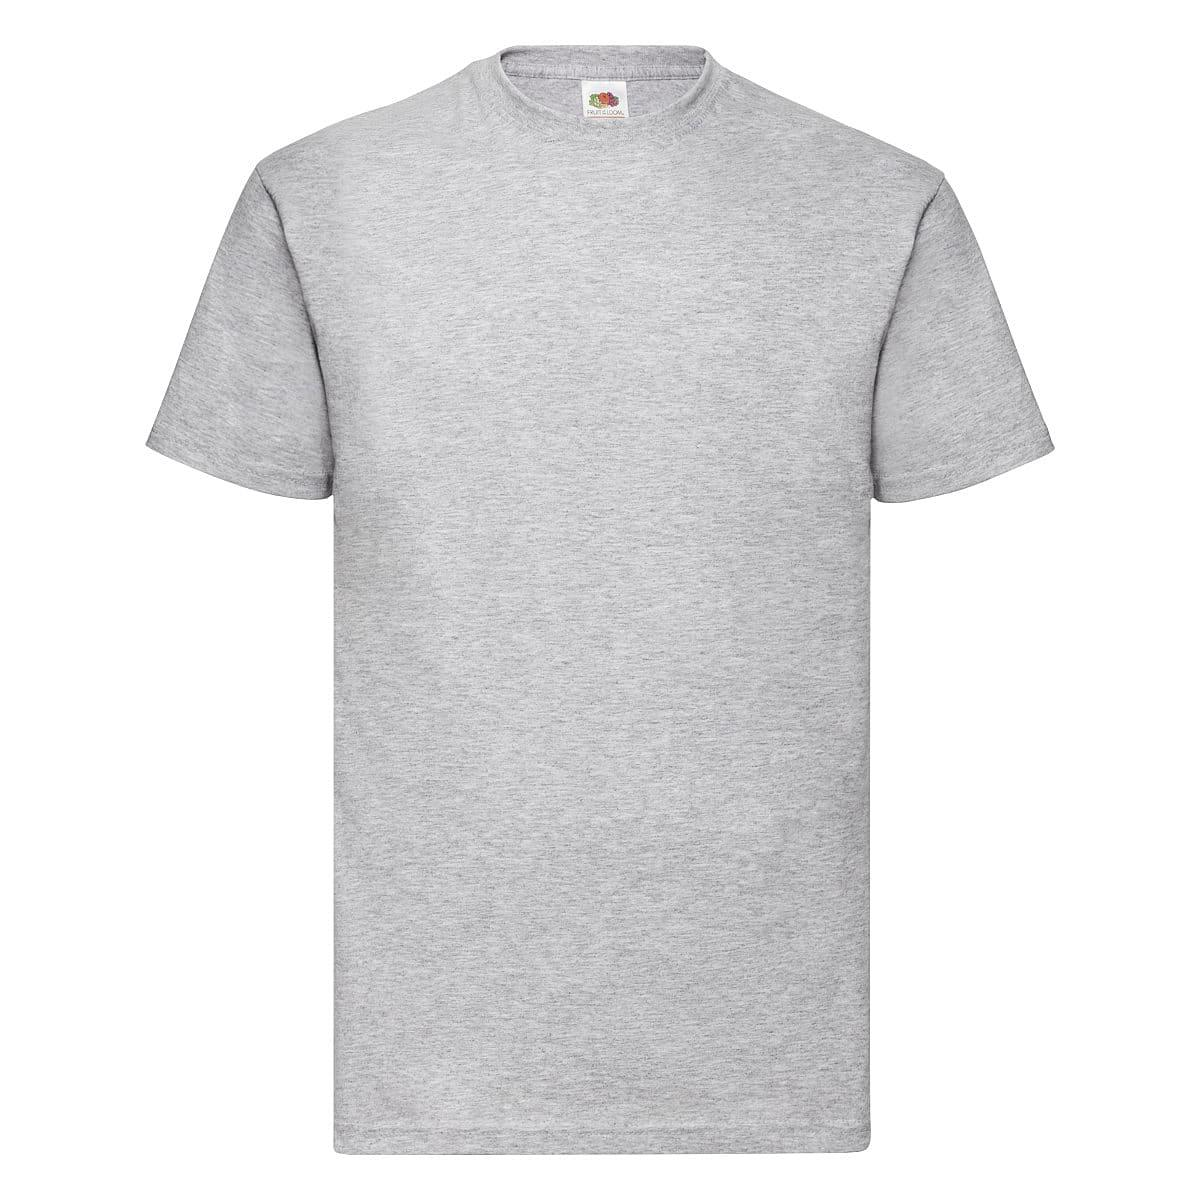 Fruit Of The Loom Valueweight T-Shirt in Heather Grey (Product Code: 61036)